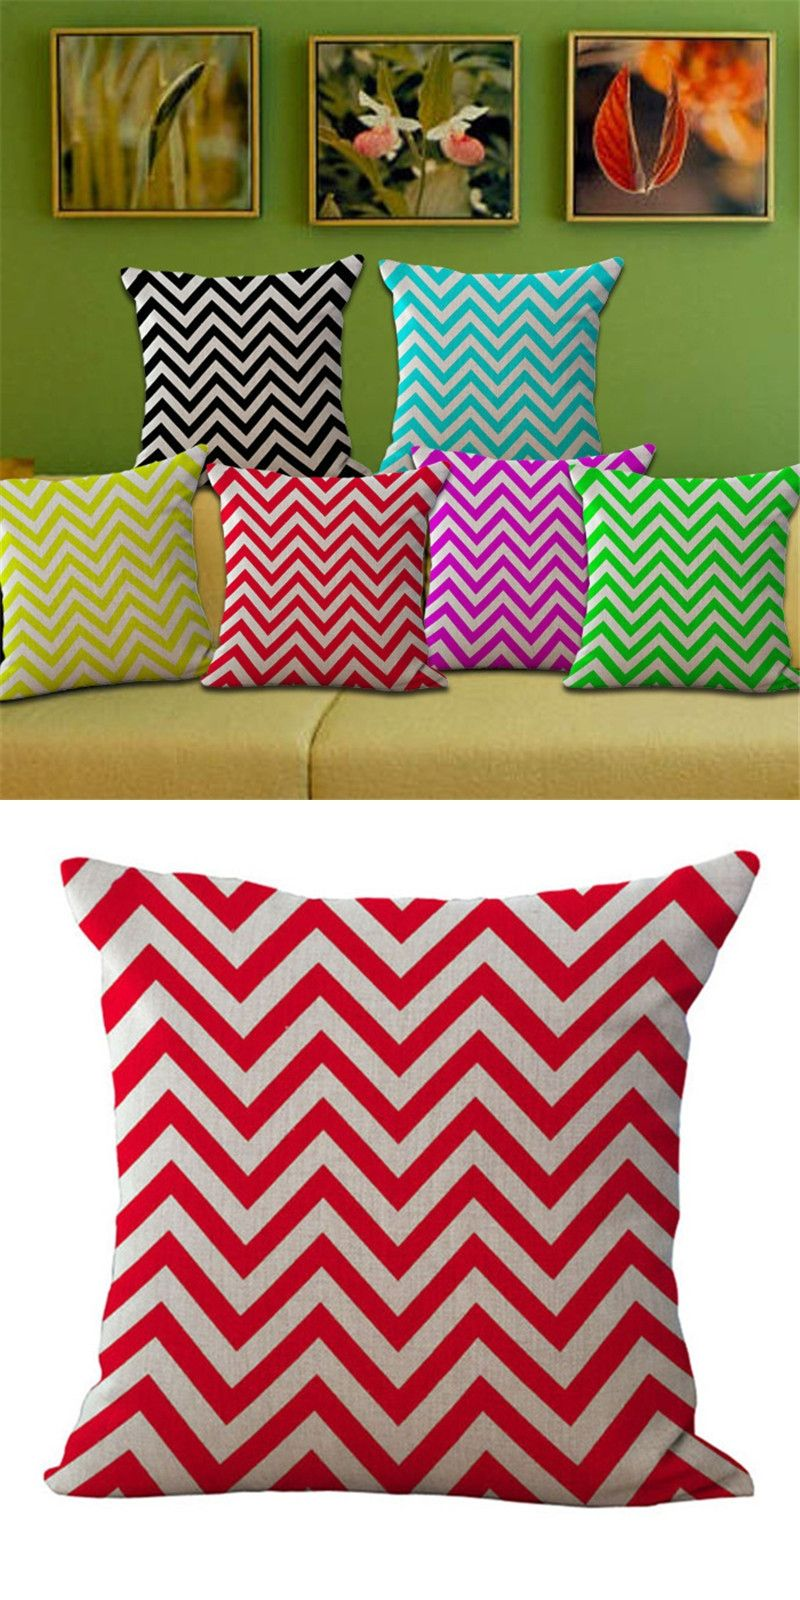 High Quality Sofa Pillows Fashion High Quality Geometric Stripe Printed Square Cotton Linen